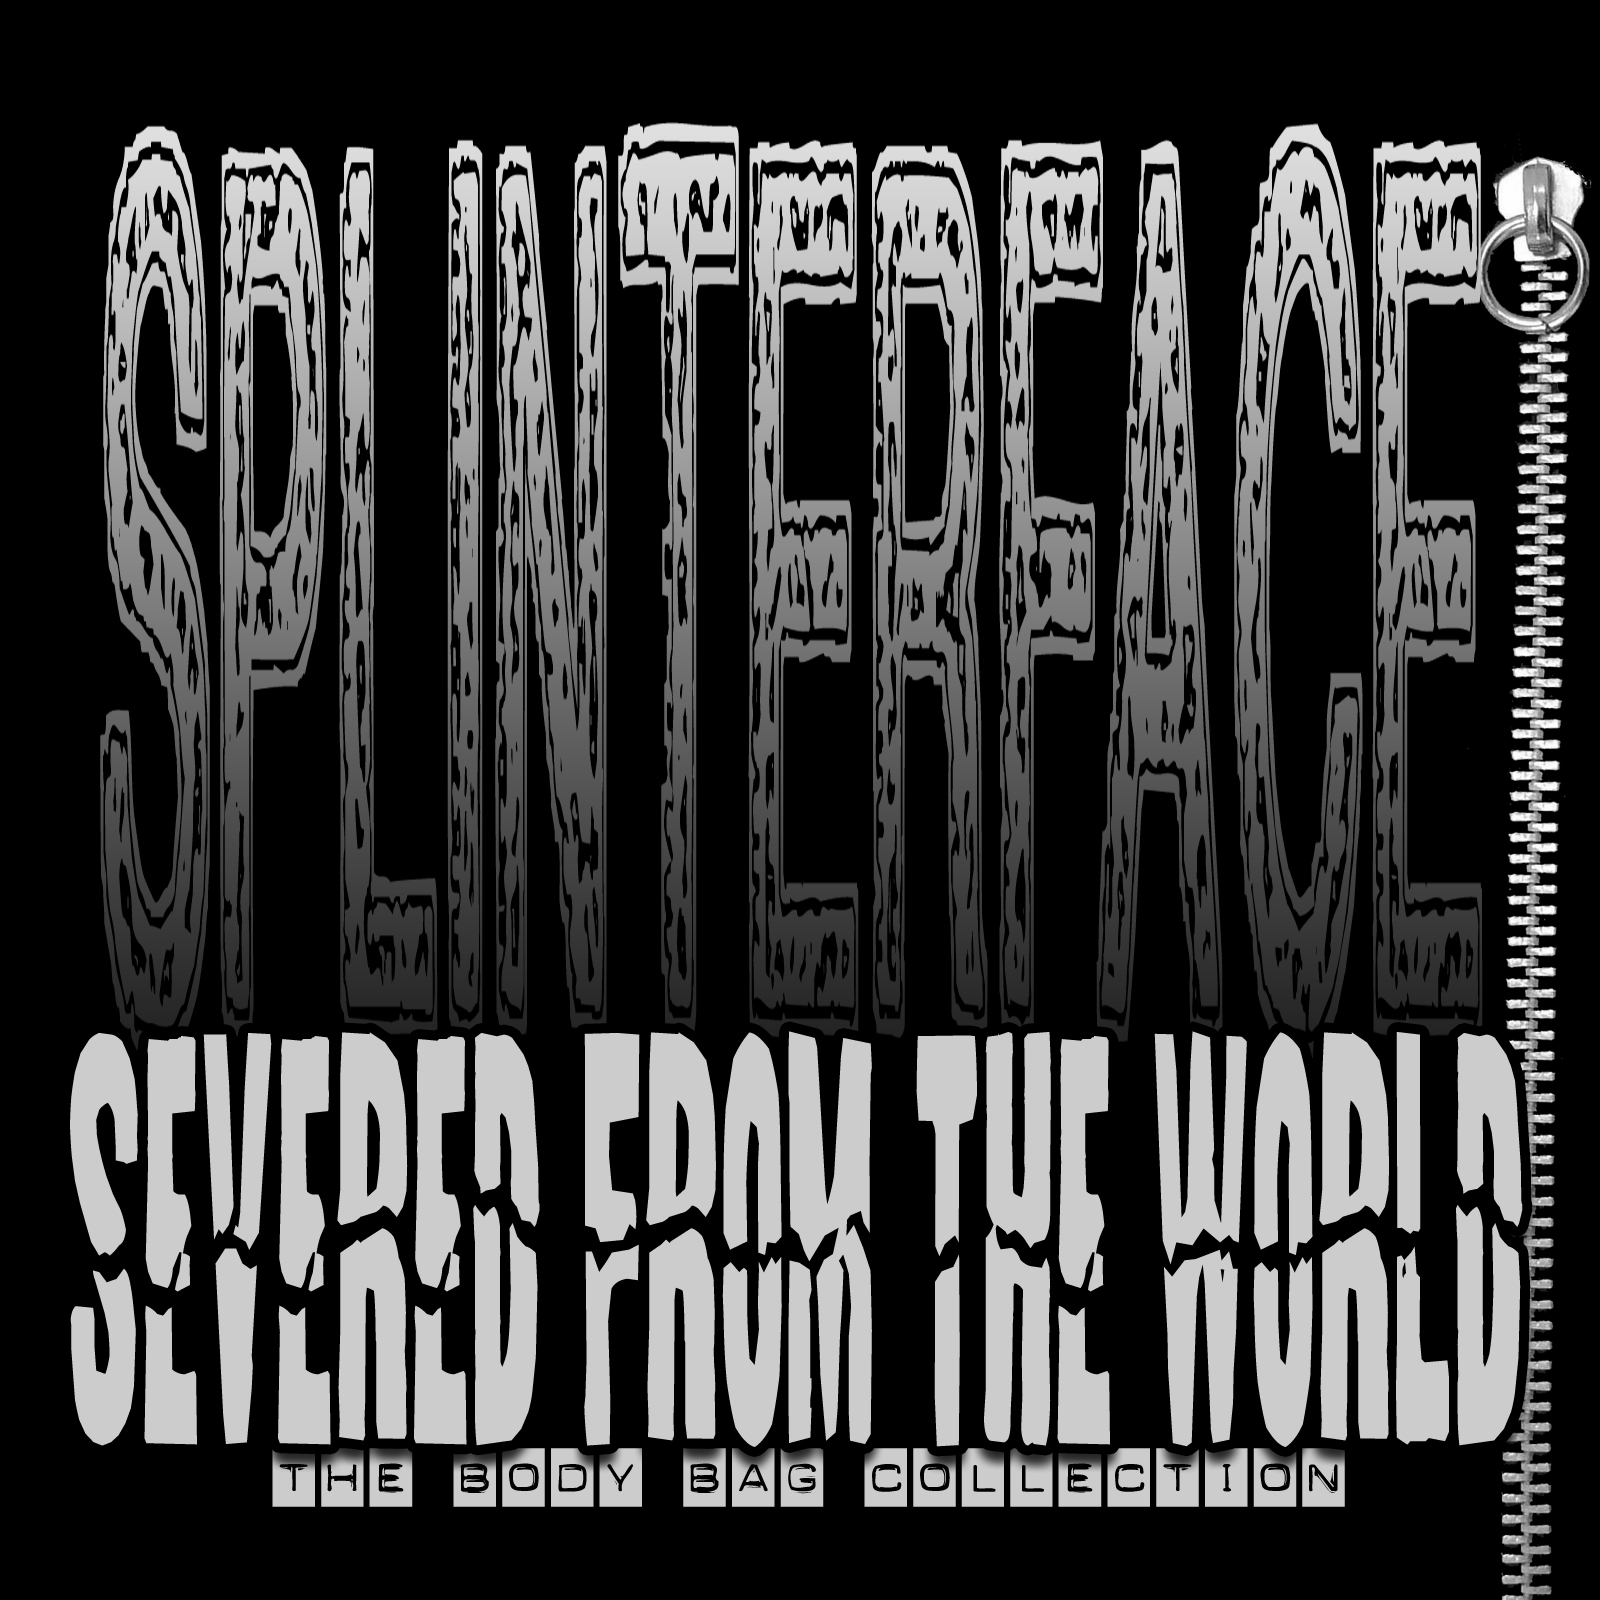 Splinterface - Severed From the World: The Body Bag Collection